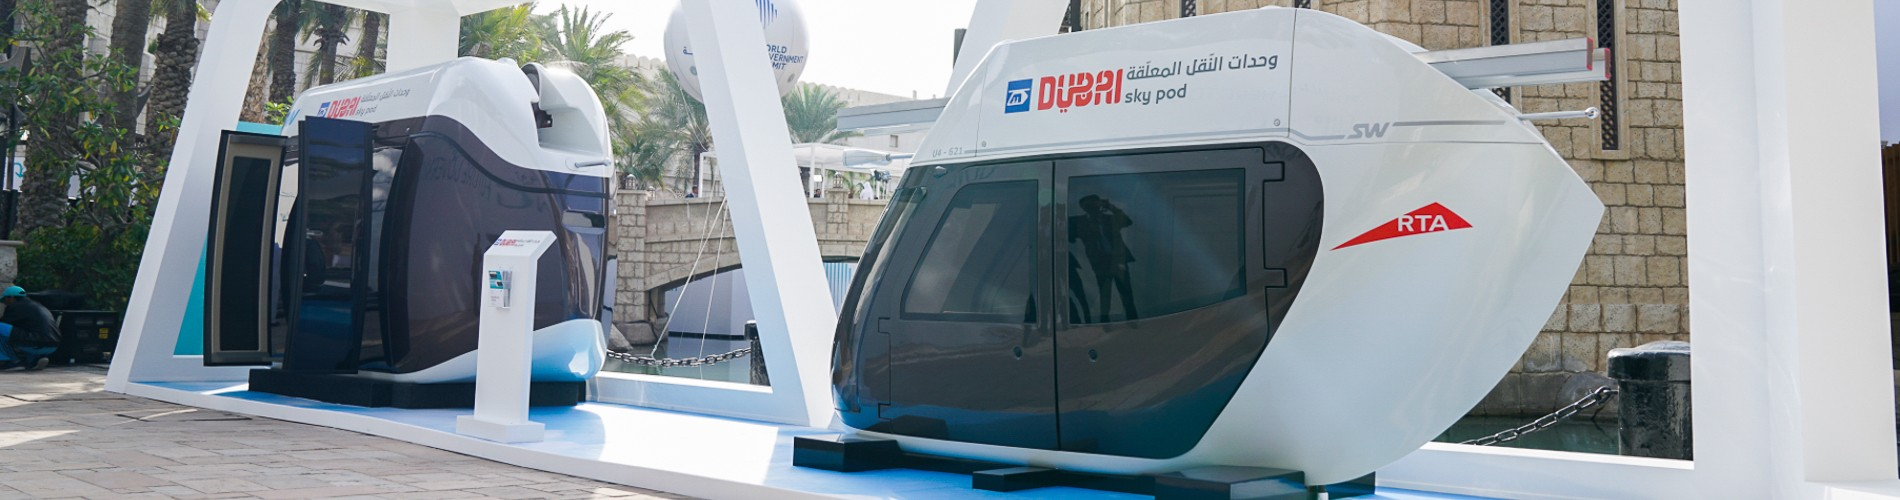 Dubai Is Among the Smartest Cities in the World - Also Thanks to SkyWay